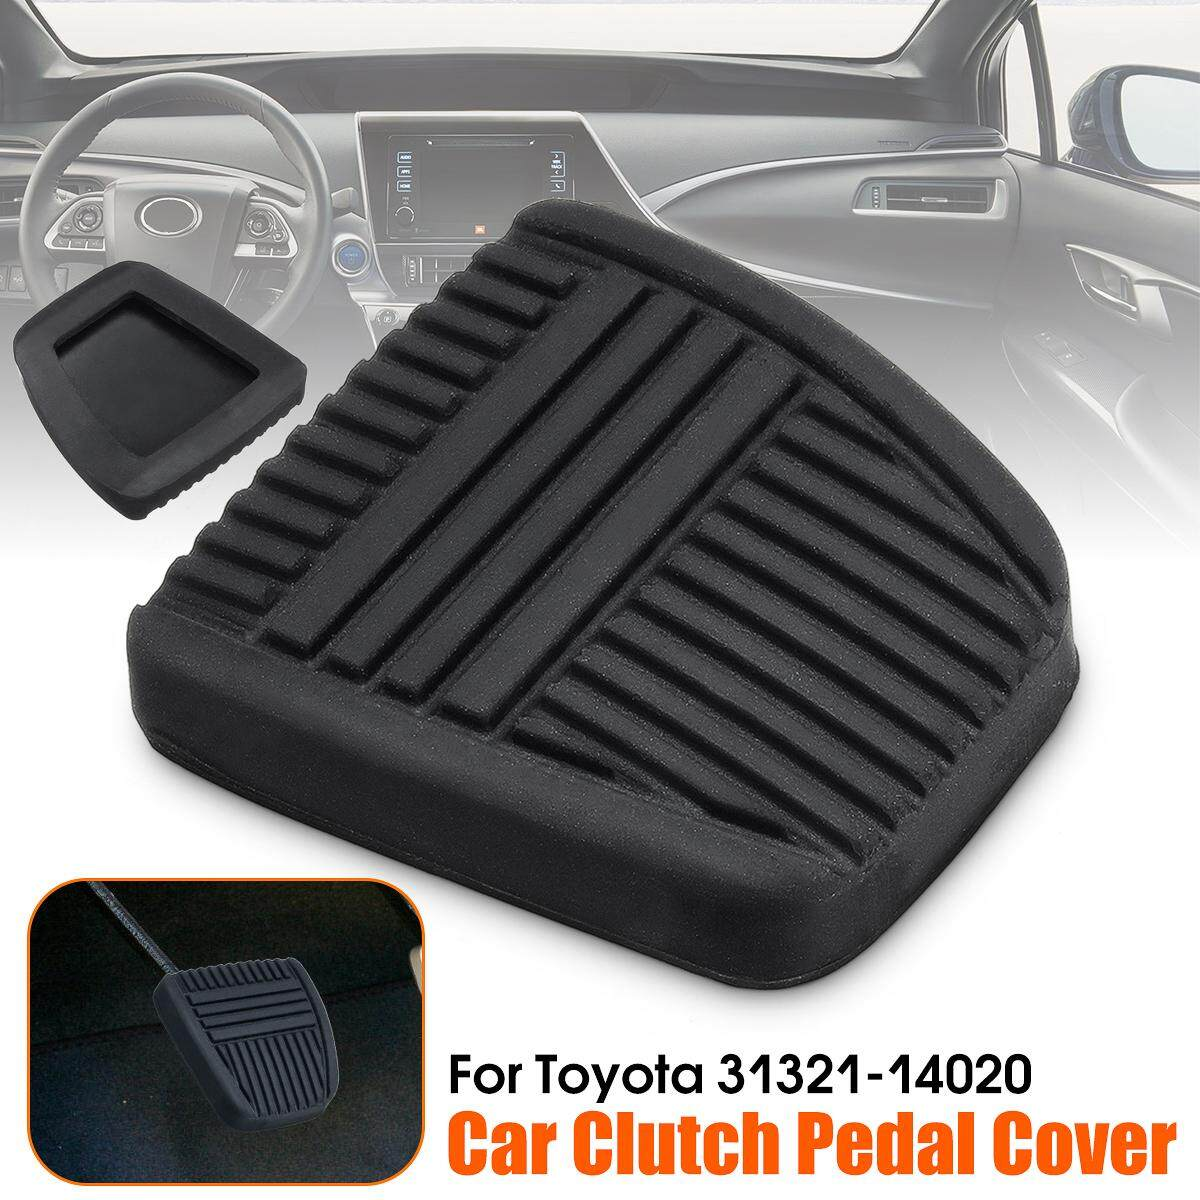 【free Shipping + Flash Deal】black Brake Clutch Pedal Pad Rubber Cover Trans For To*yo*ta 4runner 31321-14020 By Freebang.